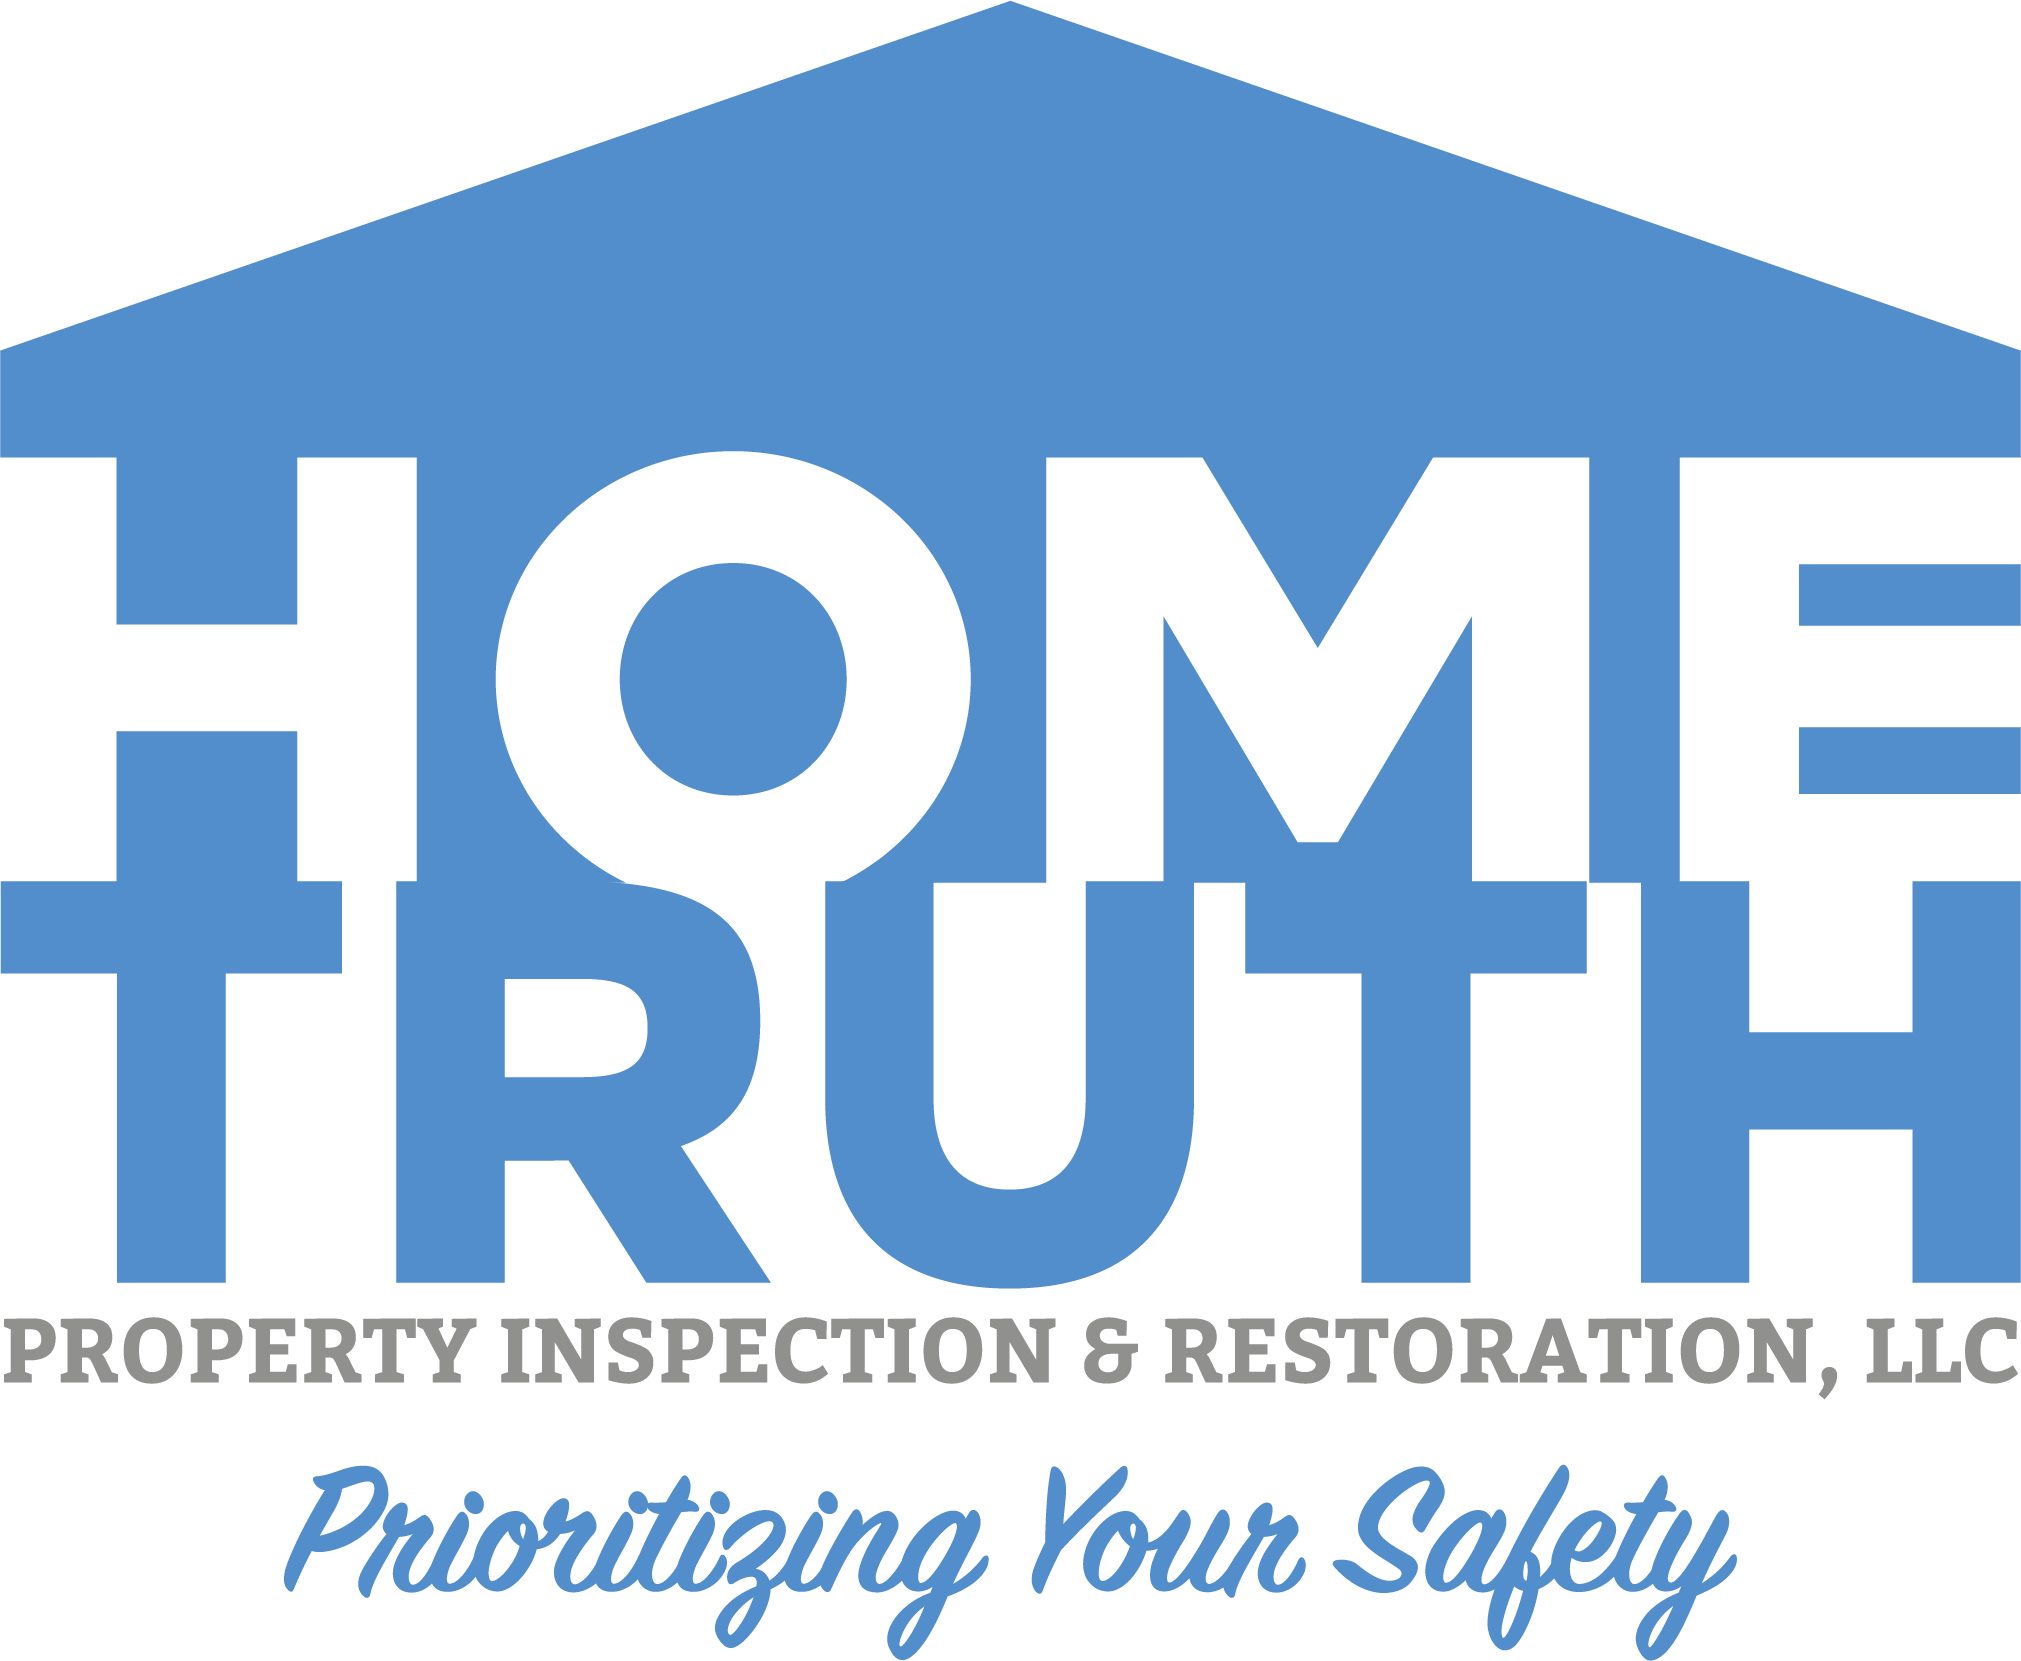 Hometruth logo for email signature